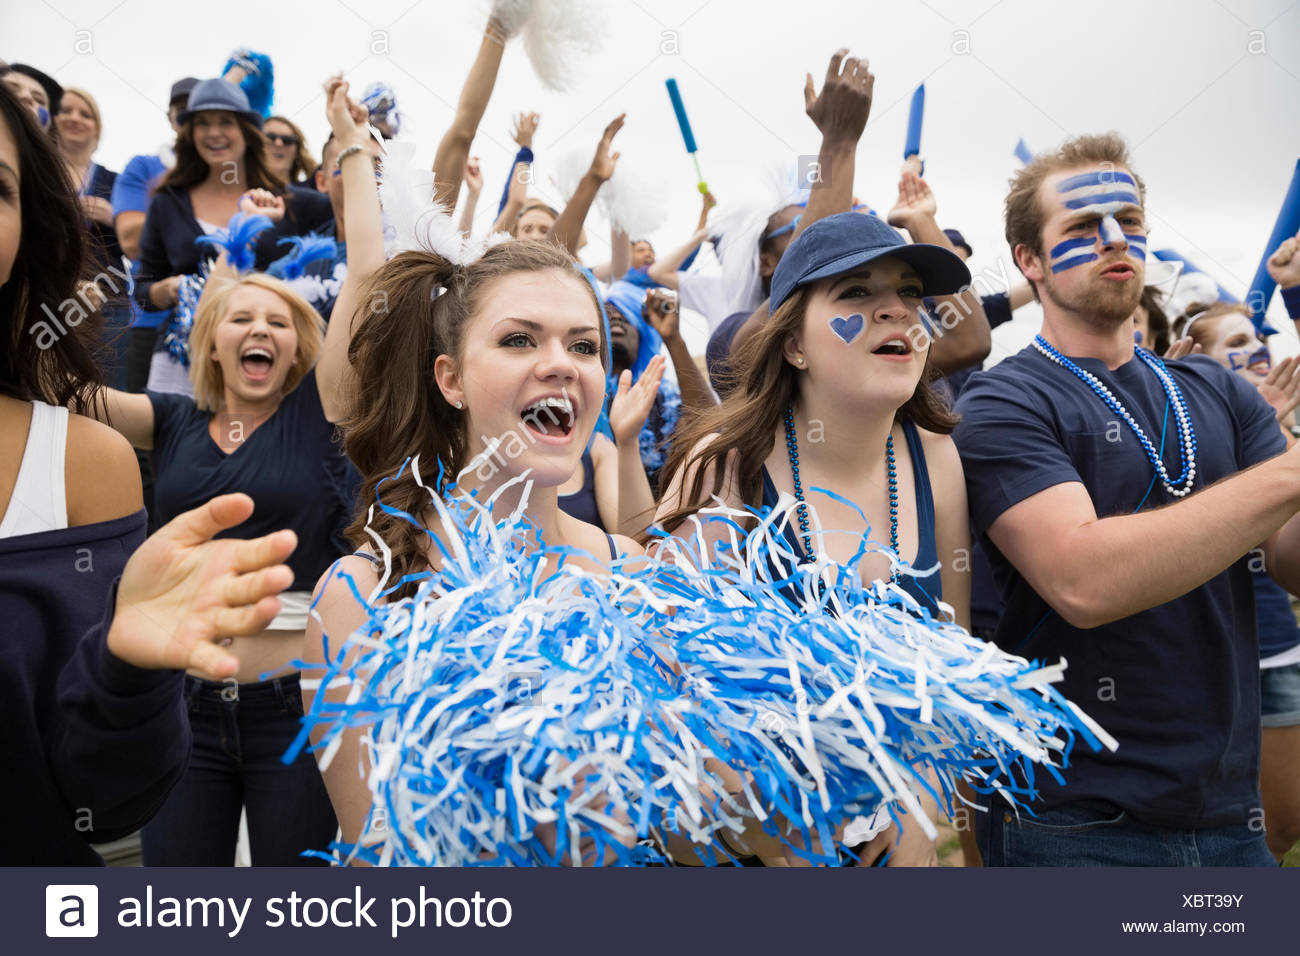 Enthusiastic crowd in blue cheering at sports event - Stock Image